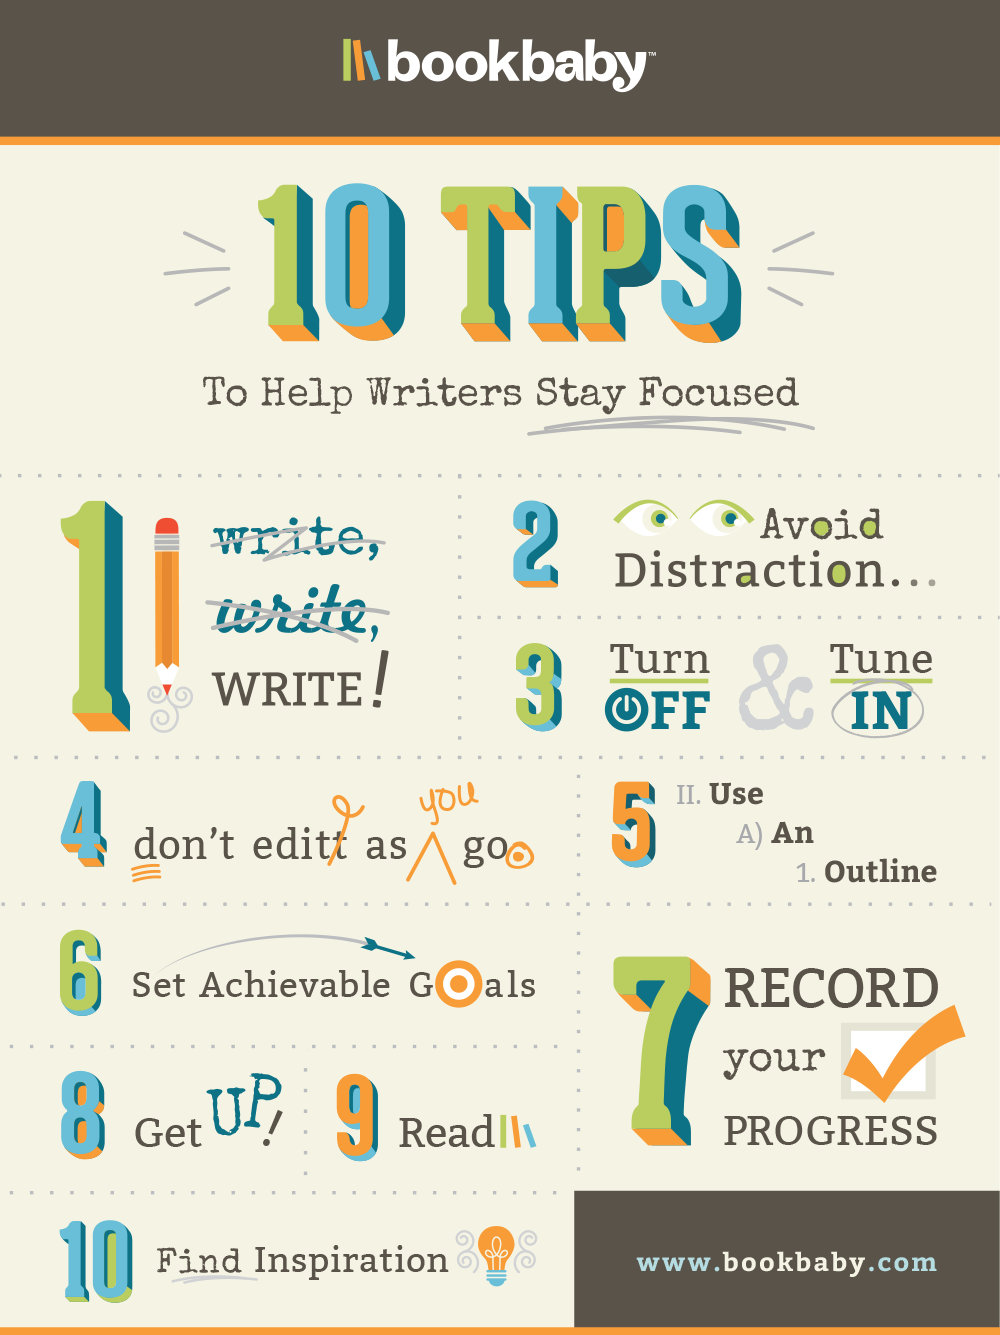 10 tips to help writers stay focused